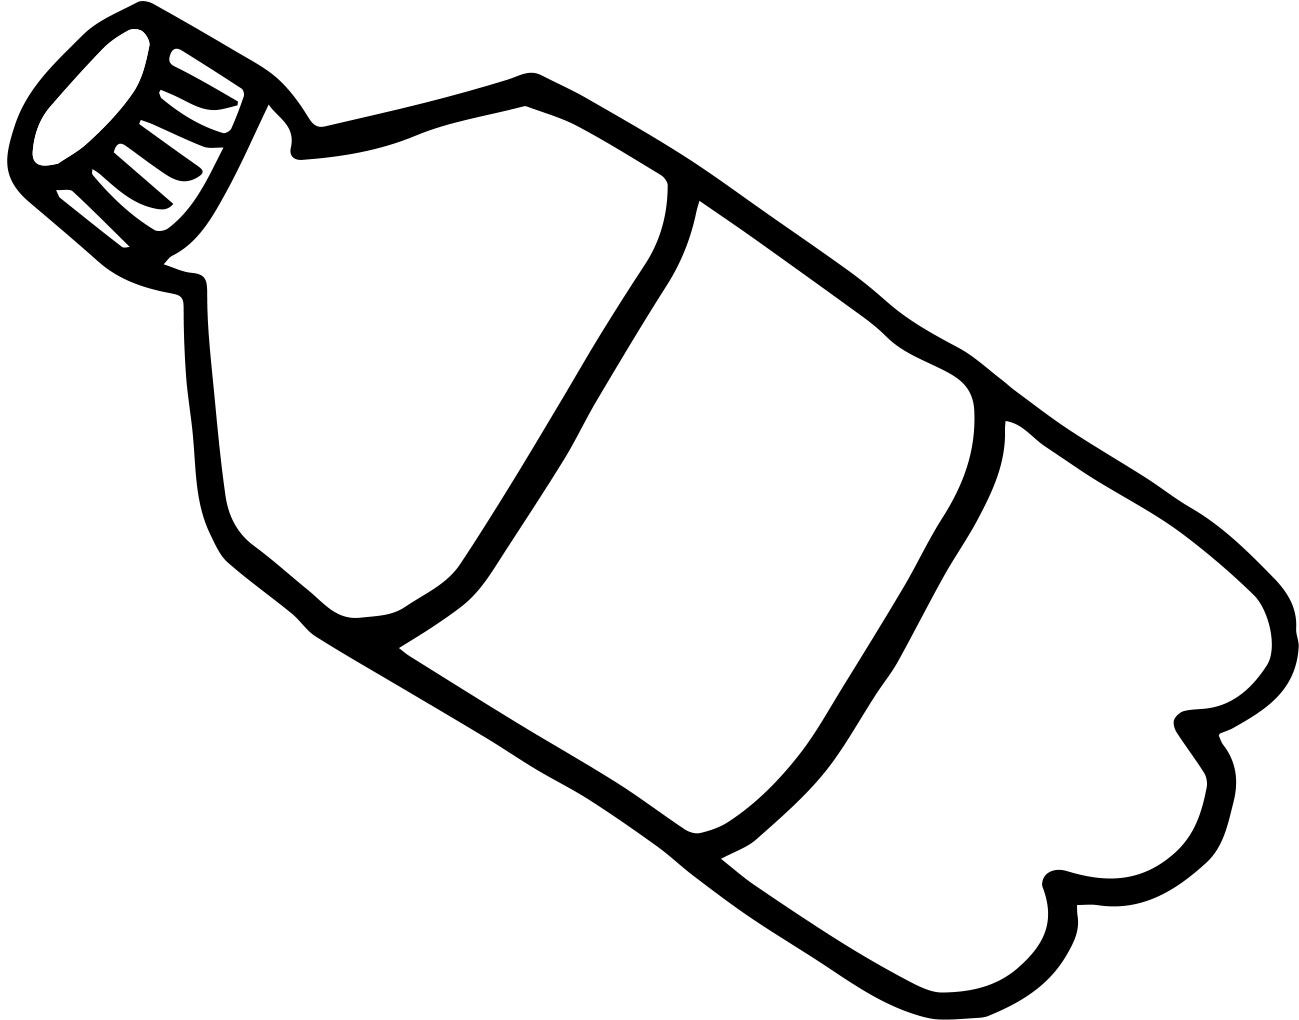 Give your best clipart black and white png transparent download Plastic water bottle black and white clipart kid - Cliparting.com png transparent download